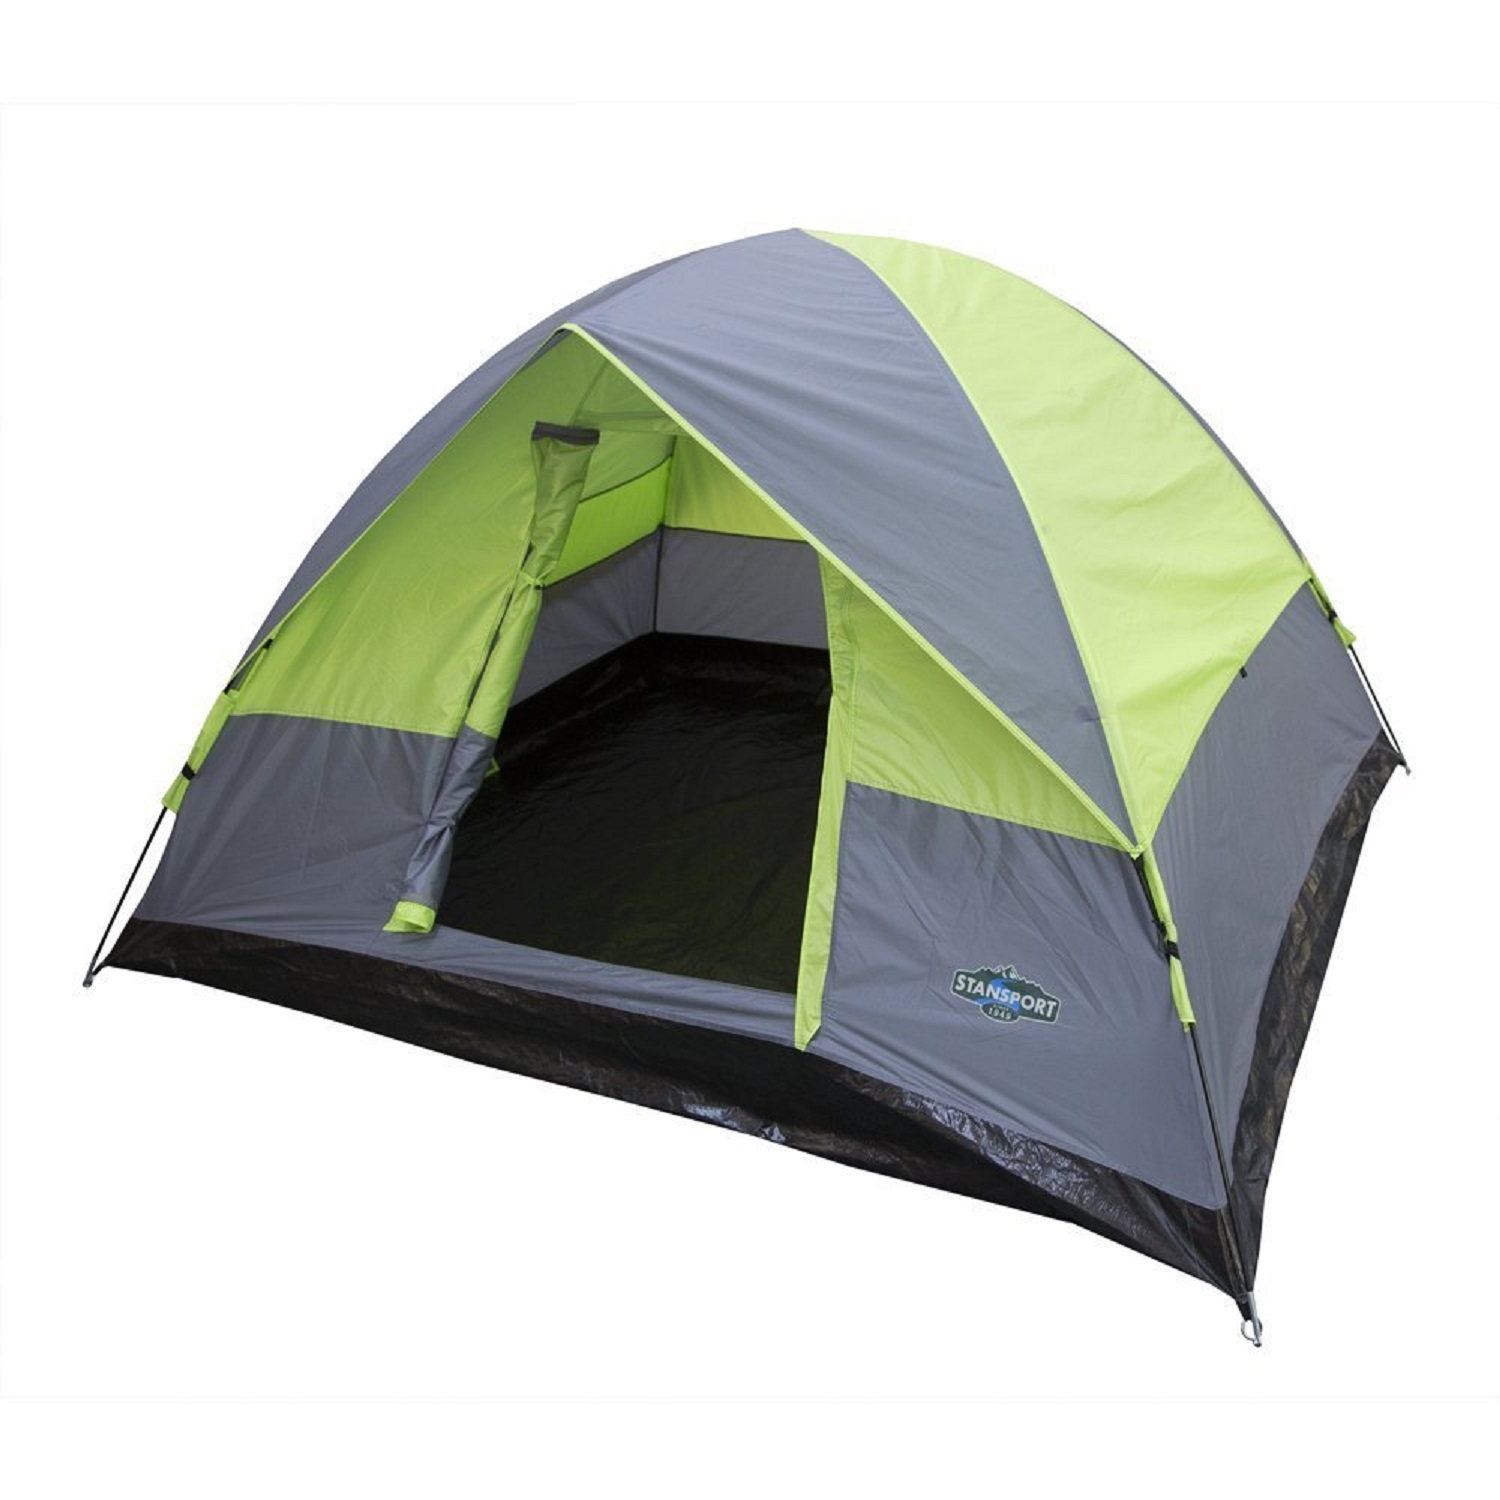 Aspen Creek Dome Tent